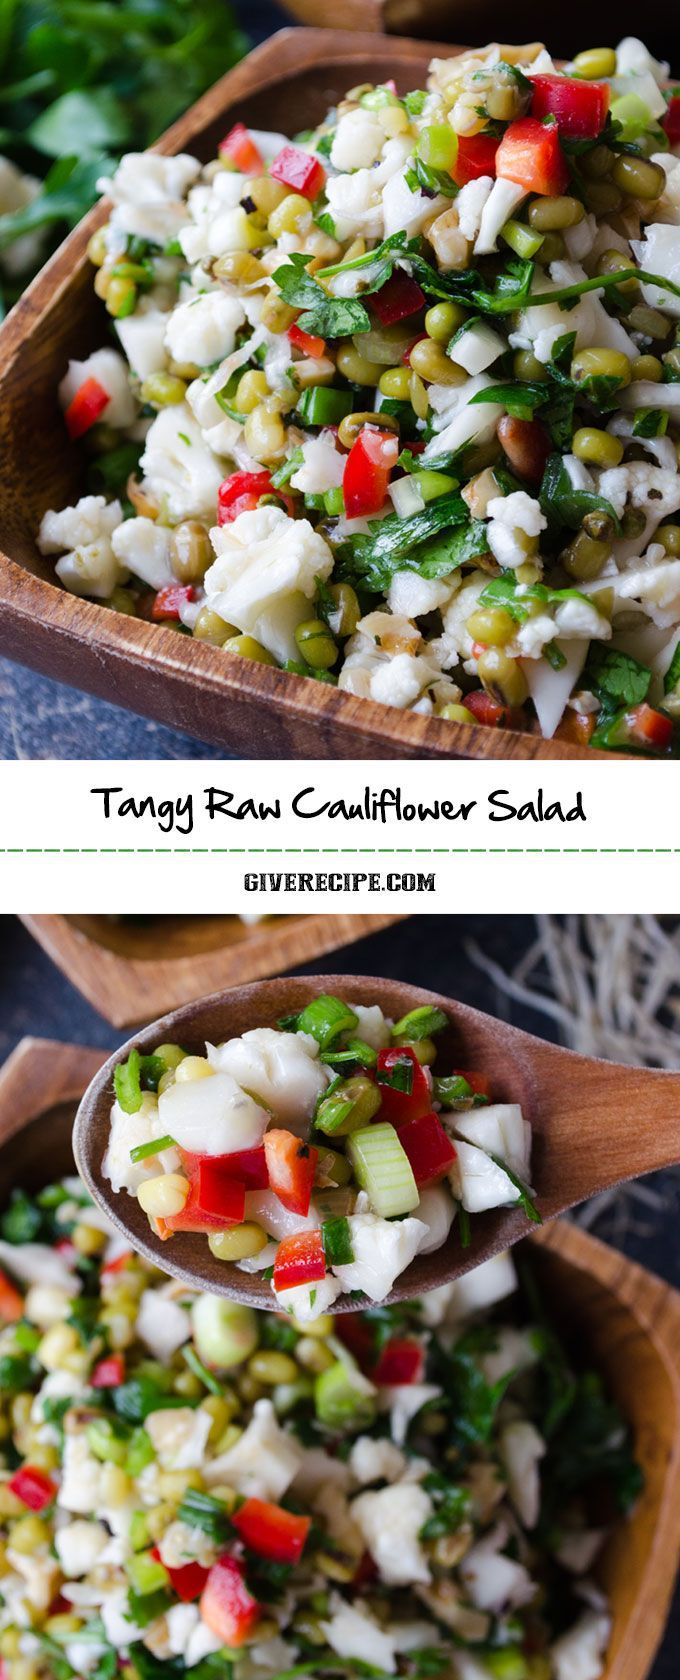 Raw Cauliflower Salad is a festive detox salad with greens and mung beans. Very healthy and filling! | http://giverecipe.com | #cauliflower #mungbeans